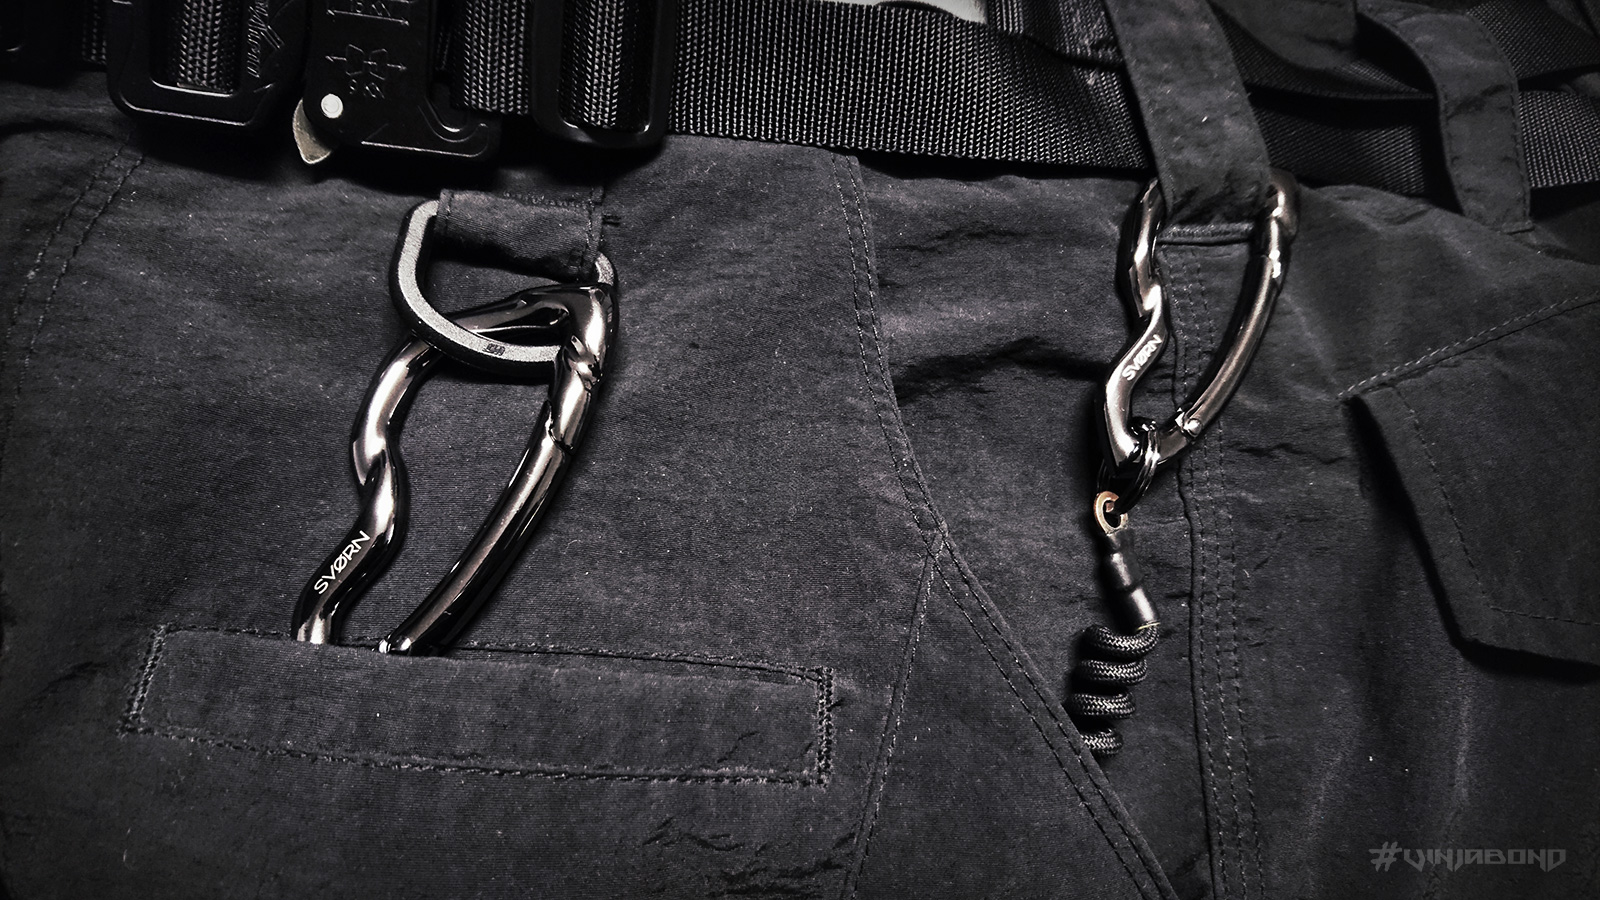 - Arcus Carabiner w/ Force 10 AC Pants Gear Link -